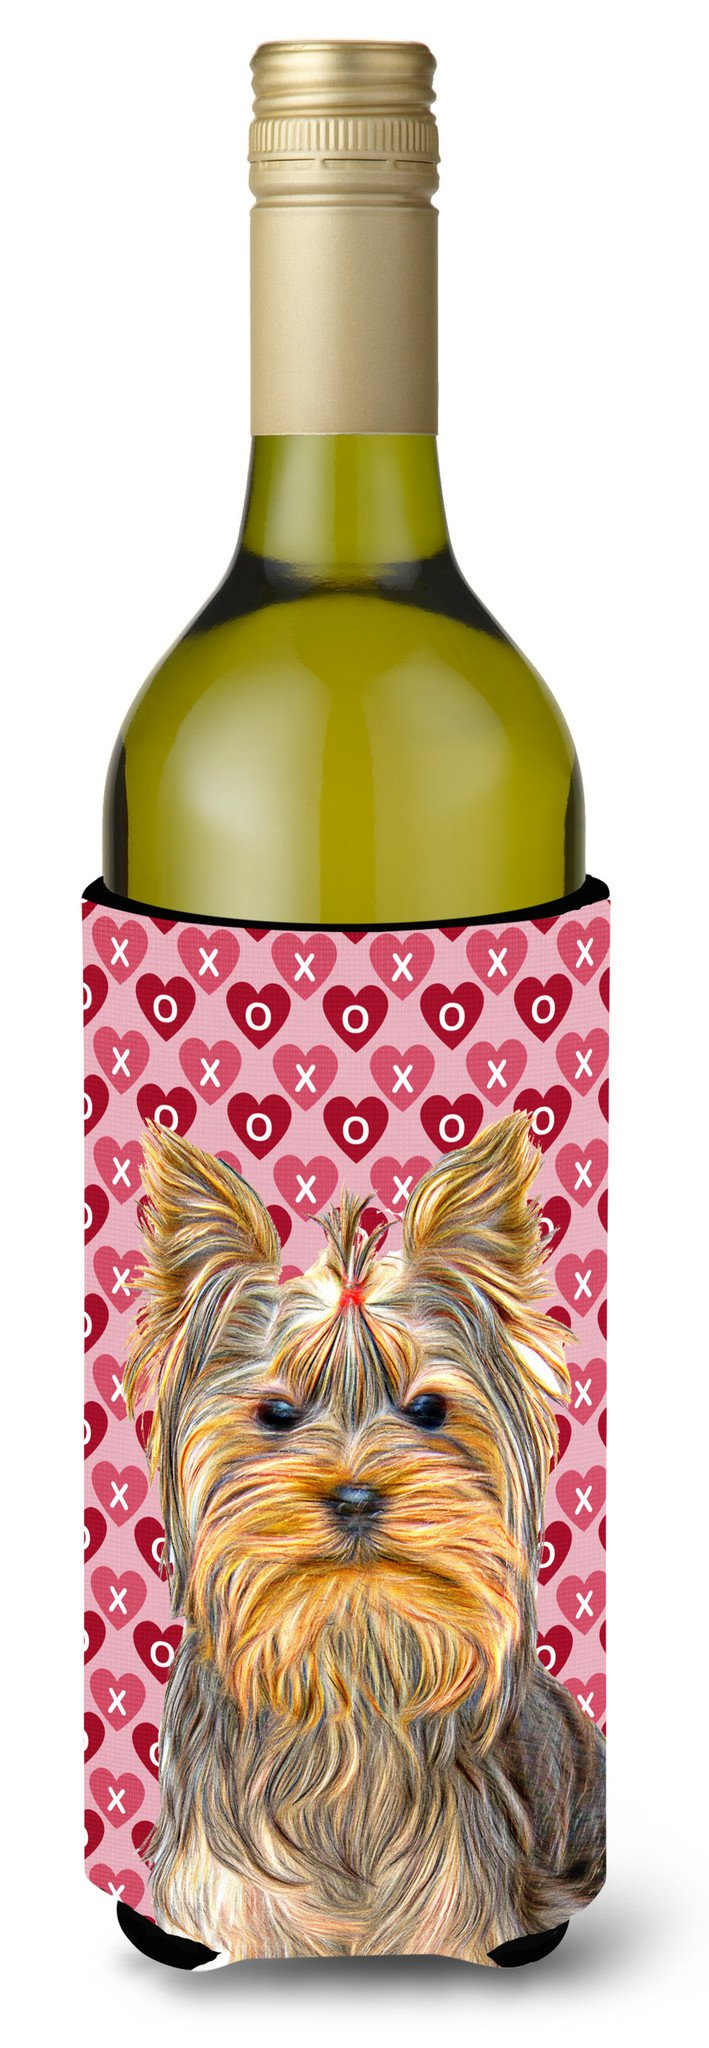 Hearts Love and Valentine's Day Yorkie / Yorkshire Terrier Wine Bottle Beverage Insulator Hugger KJ1191LITERK by Caroline's Treasures